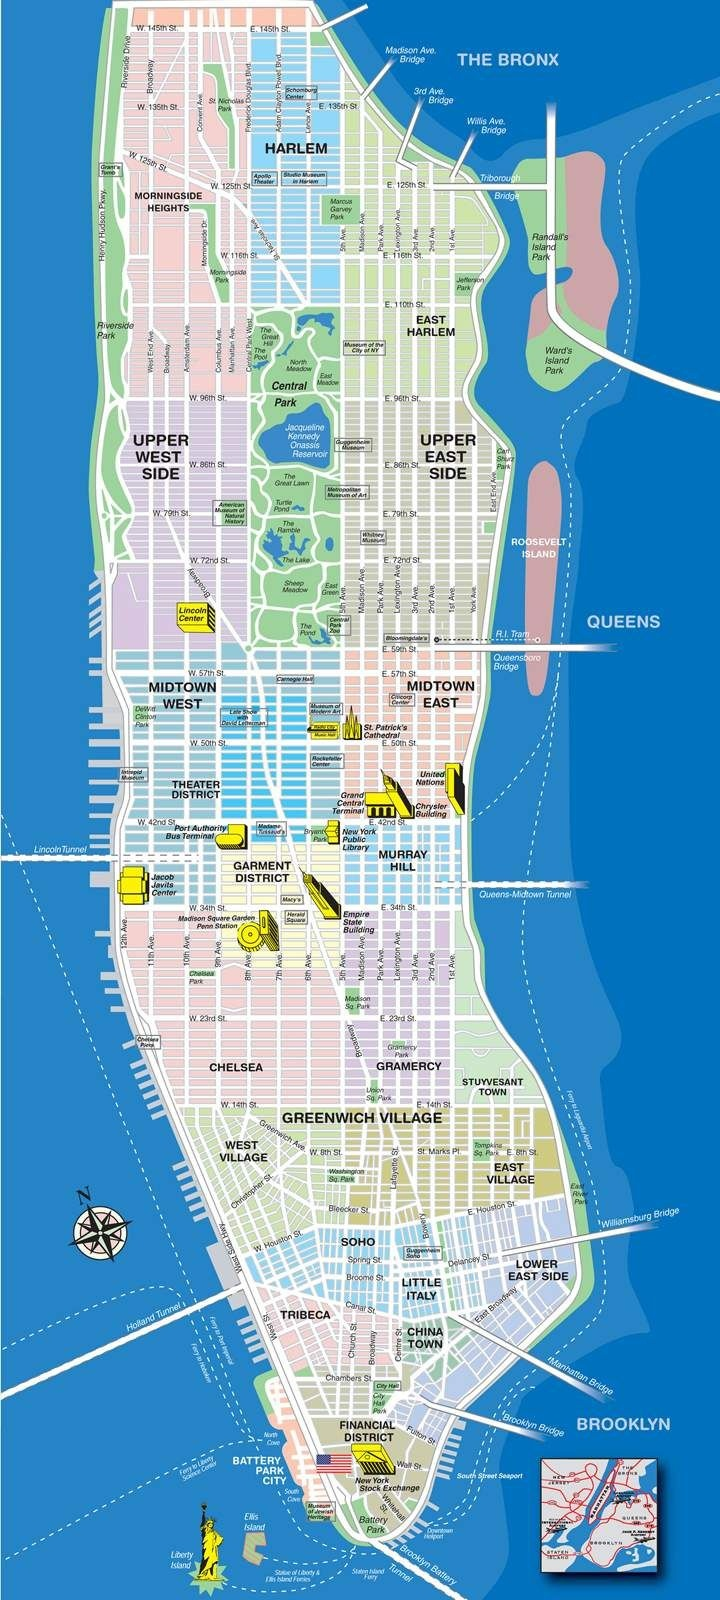 High-Resolution Map Of Manhattan For Print Or Download | Usa Travel - Free Printable Map Of Manhattan